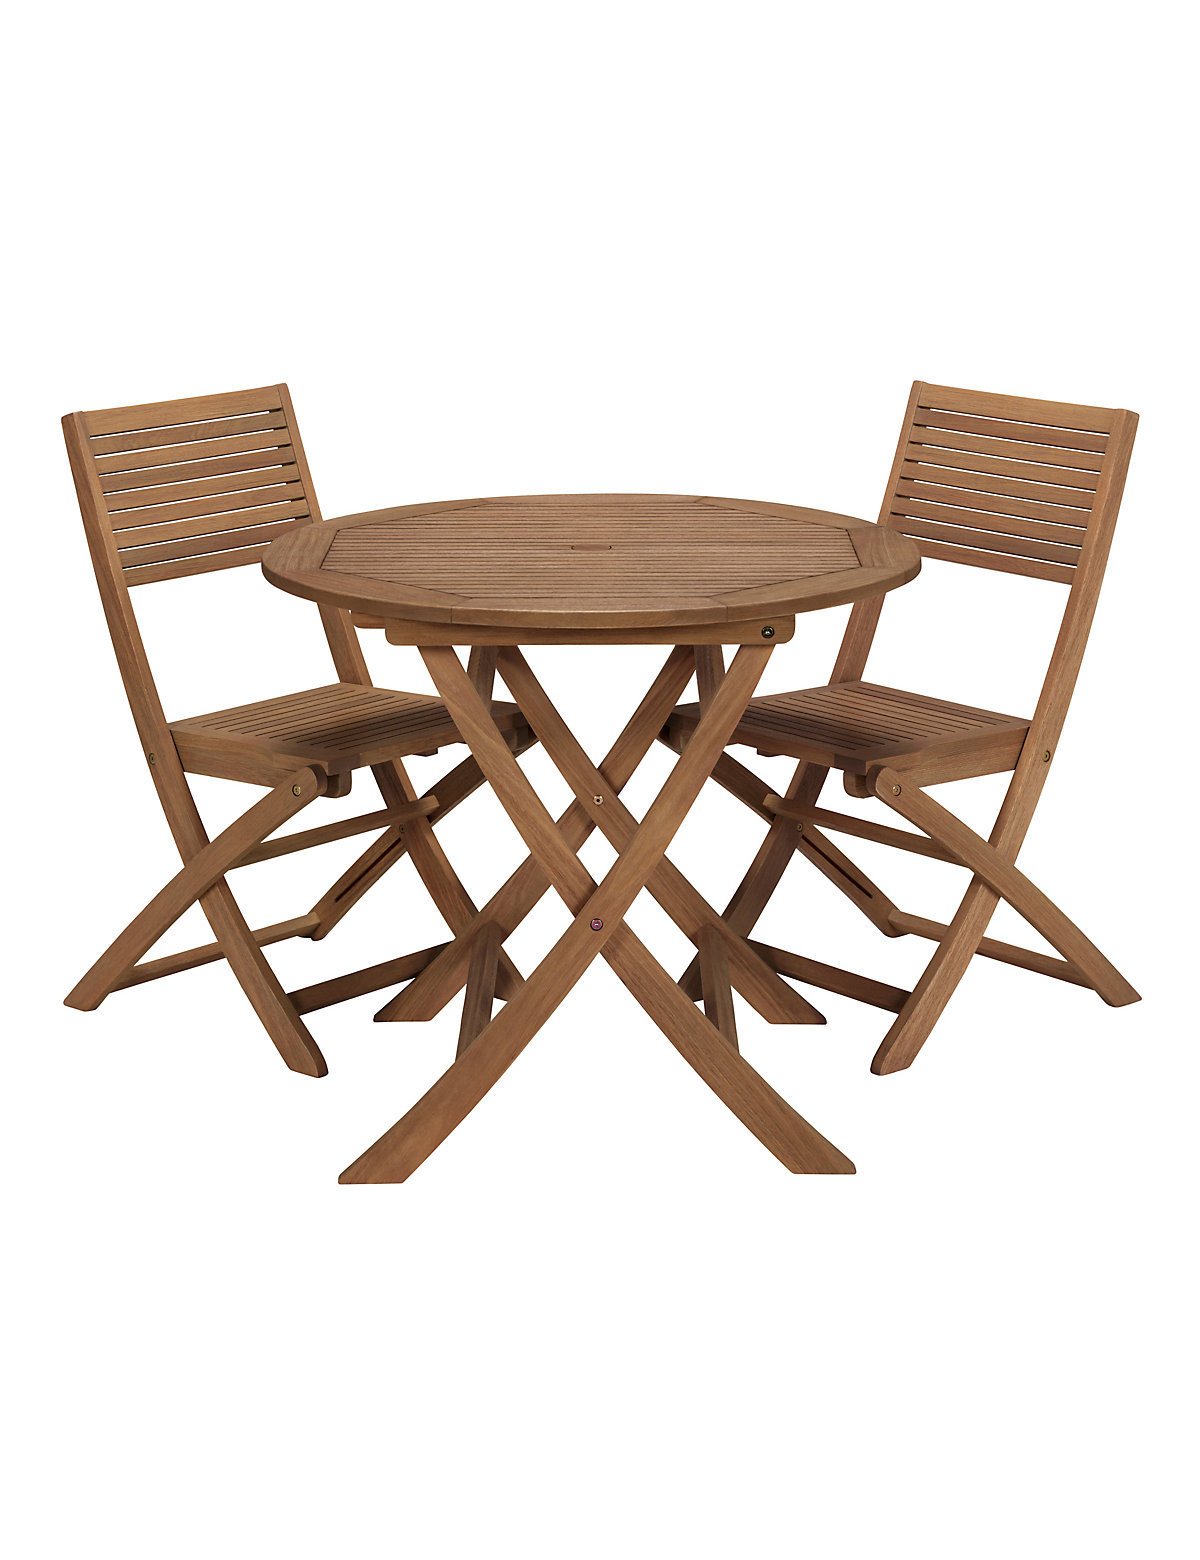 Buy cheap Folding dining table and chairs compare Sheds  : T656984BOISPDPMAXIZOOM from nad.priceinspector.co.uk size 1200 x 1560 jpeg 174kB